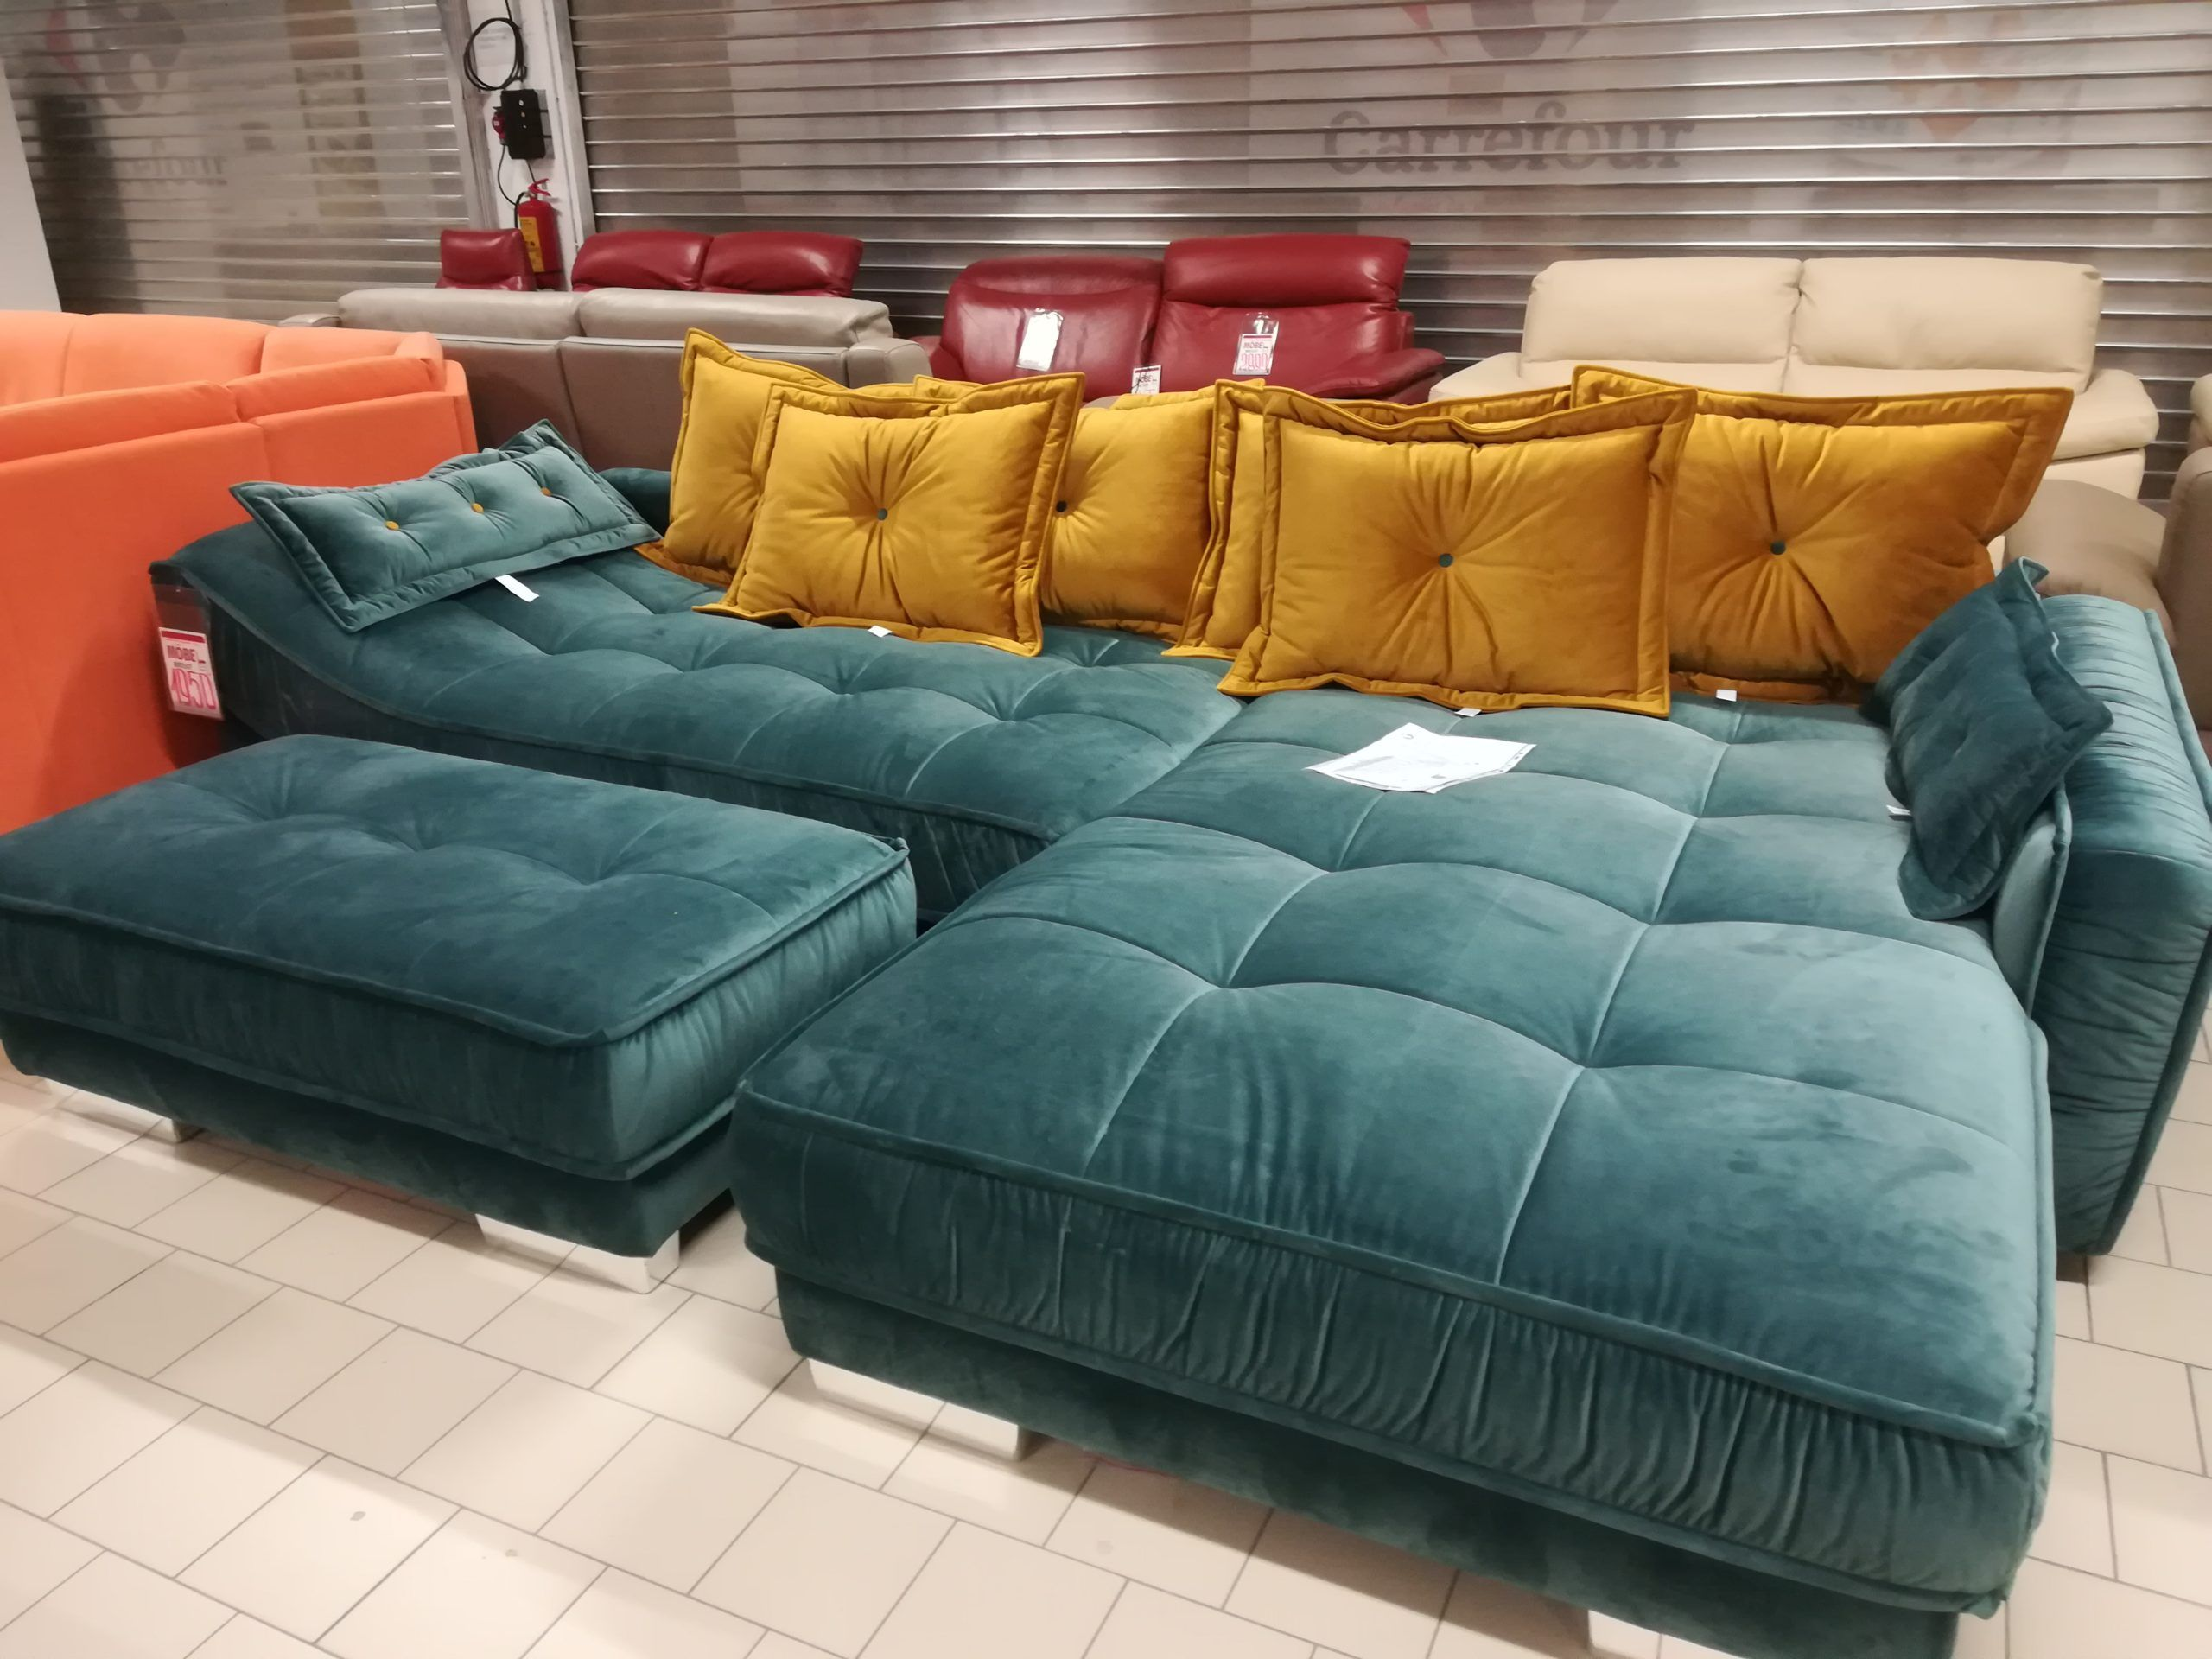 Diwan Möbel Ъглов диван+табуретка ''diwan'' - Mobel Galeria Outlet | Sectional Couch, Home, Home Decor